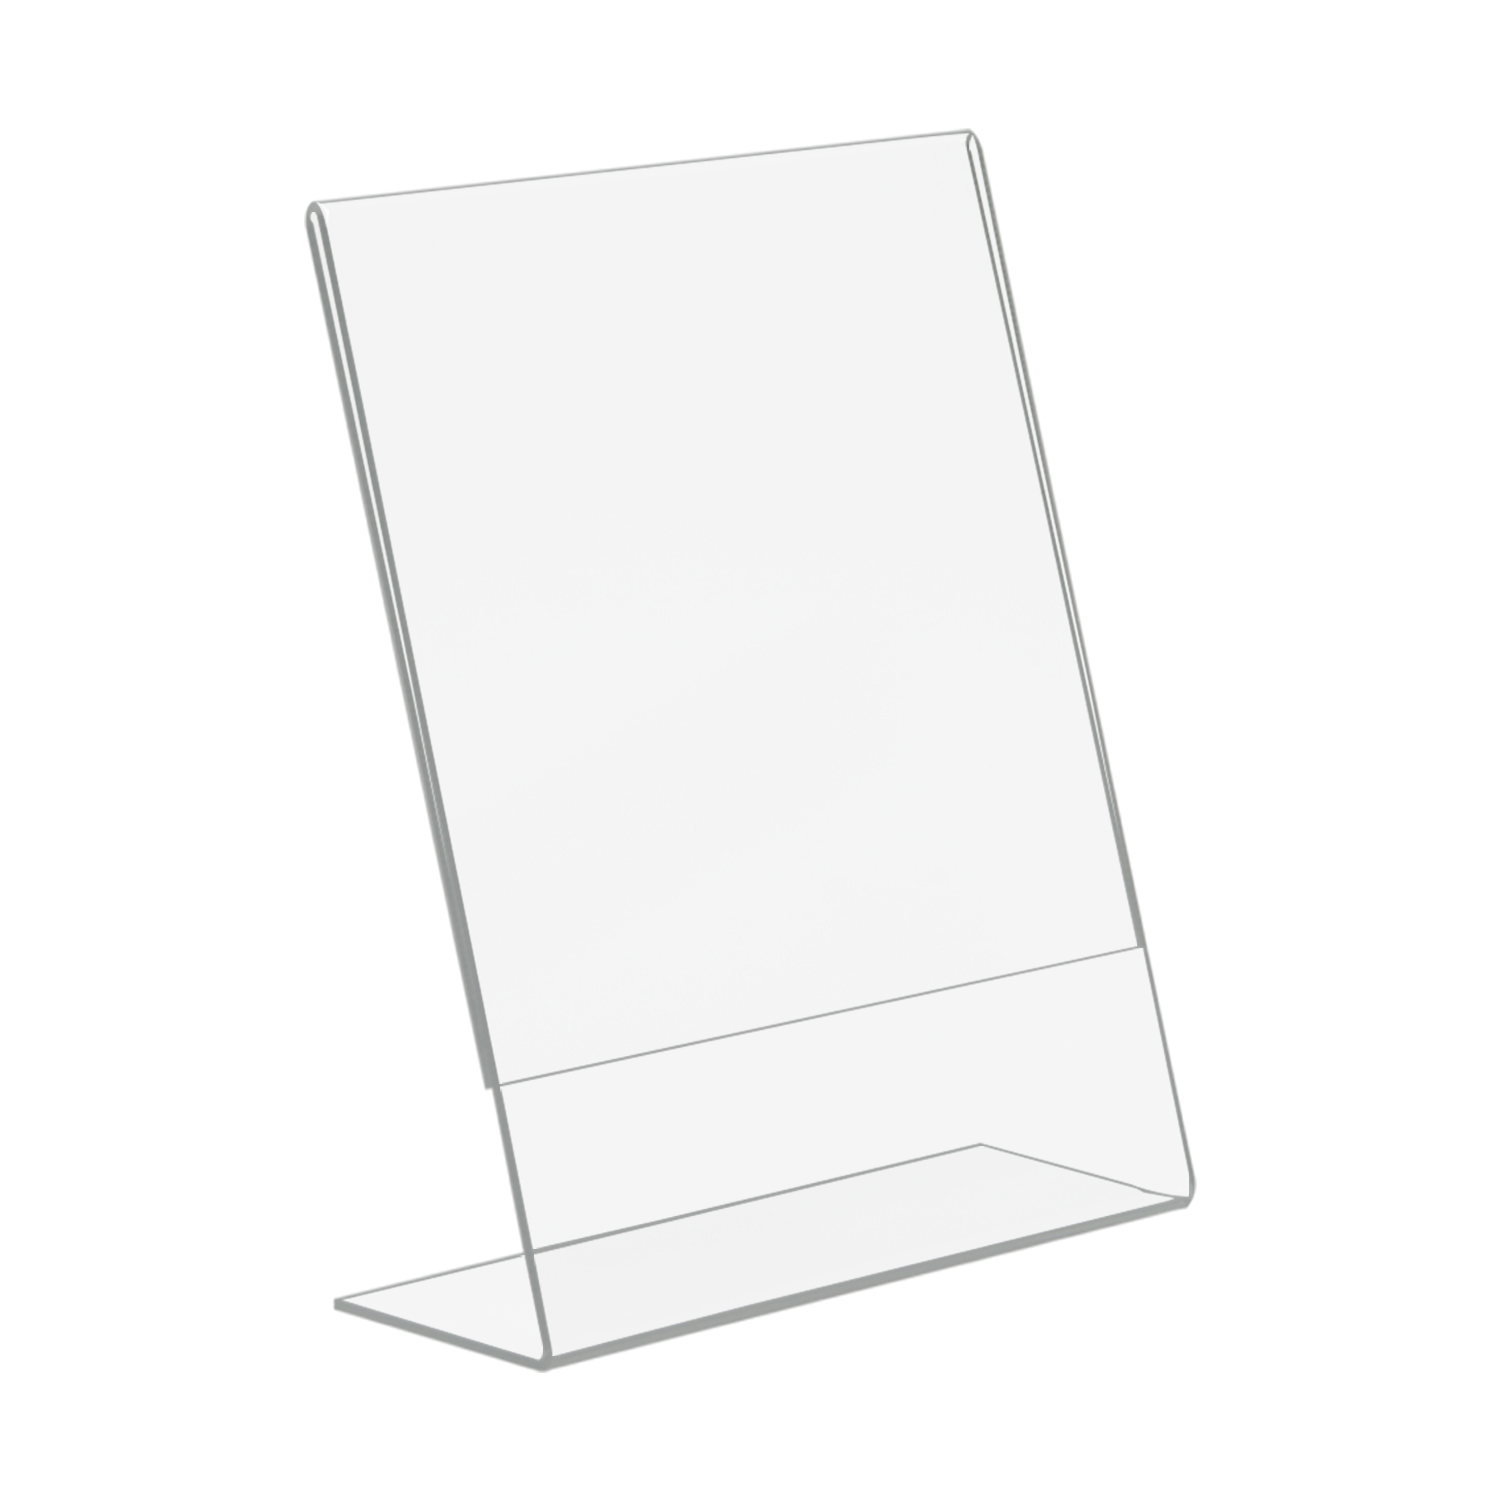 5x7 Slant Back Acrylic Sign Holder Buy Acrylic Displays